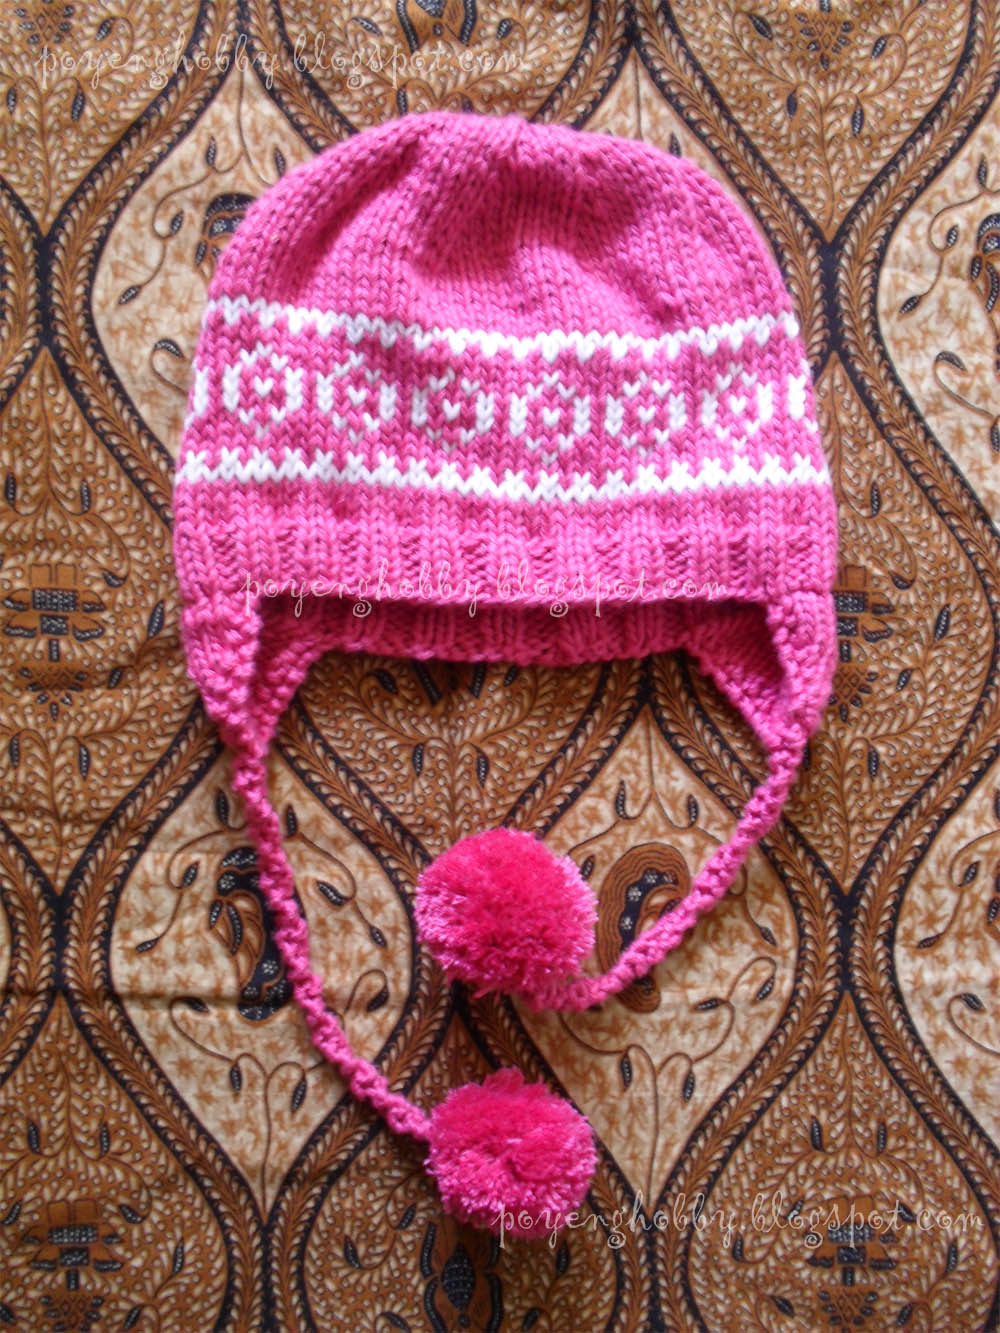 Knitting Pattern Baby Hat With Ear Flaps : Ajeng Belajar Merajut: Rajut Free Knitting Pattern : Ear Flap Hat with motive